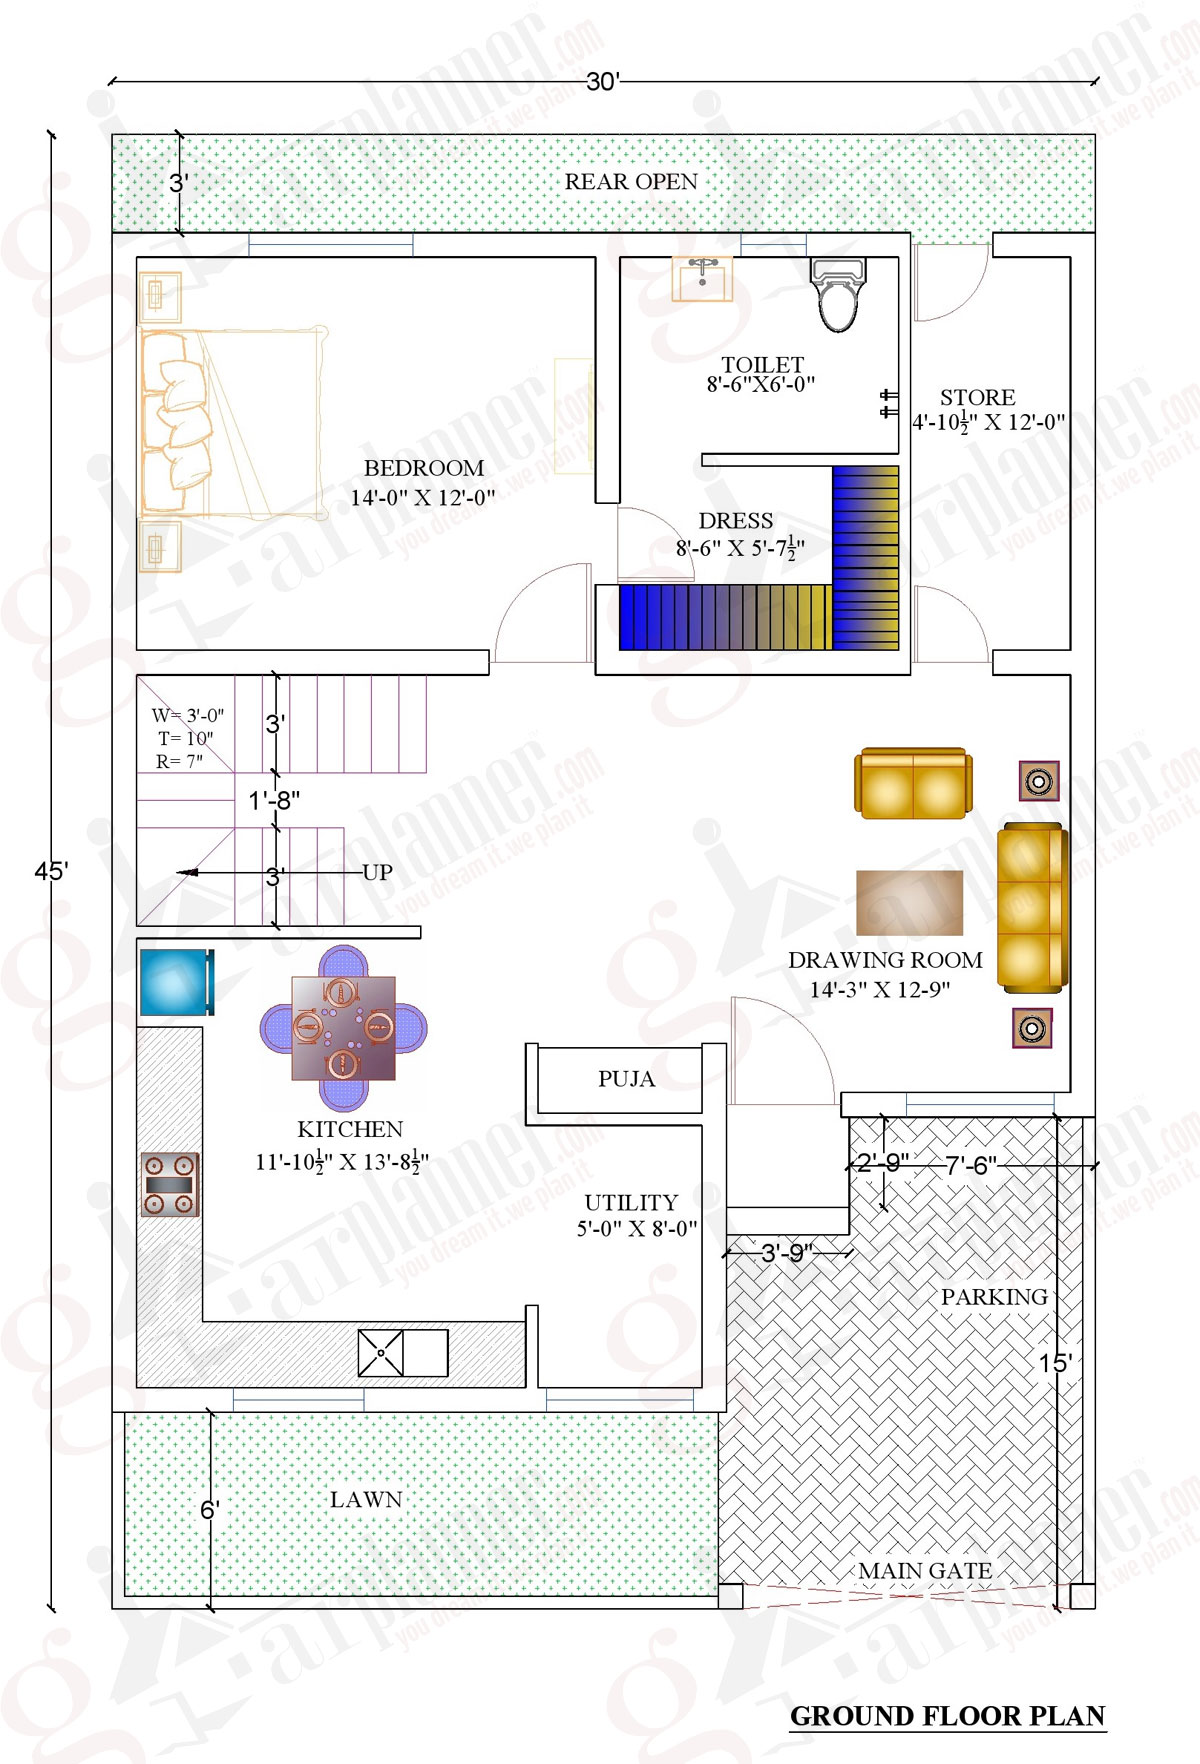 Very Small Bedroom House Plans Html on very small 4 bedroom house plans, very small bungalow plans, very small studio plans, very small apartment plans, very small kitchen plans, very small barn plans, very small garden plans, very small open floor plans,